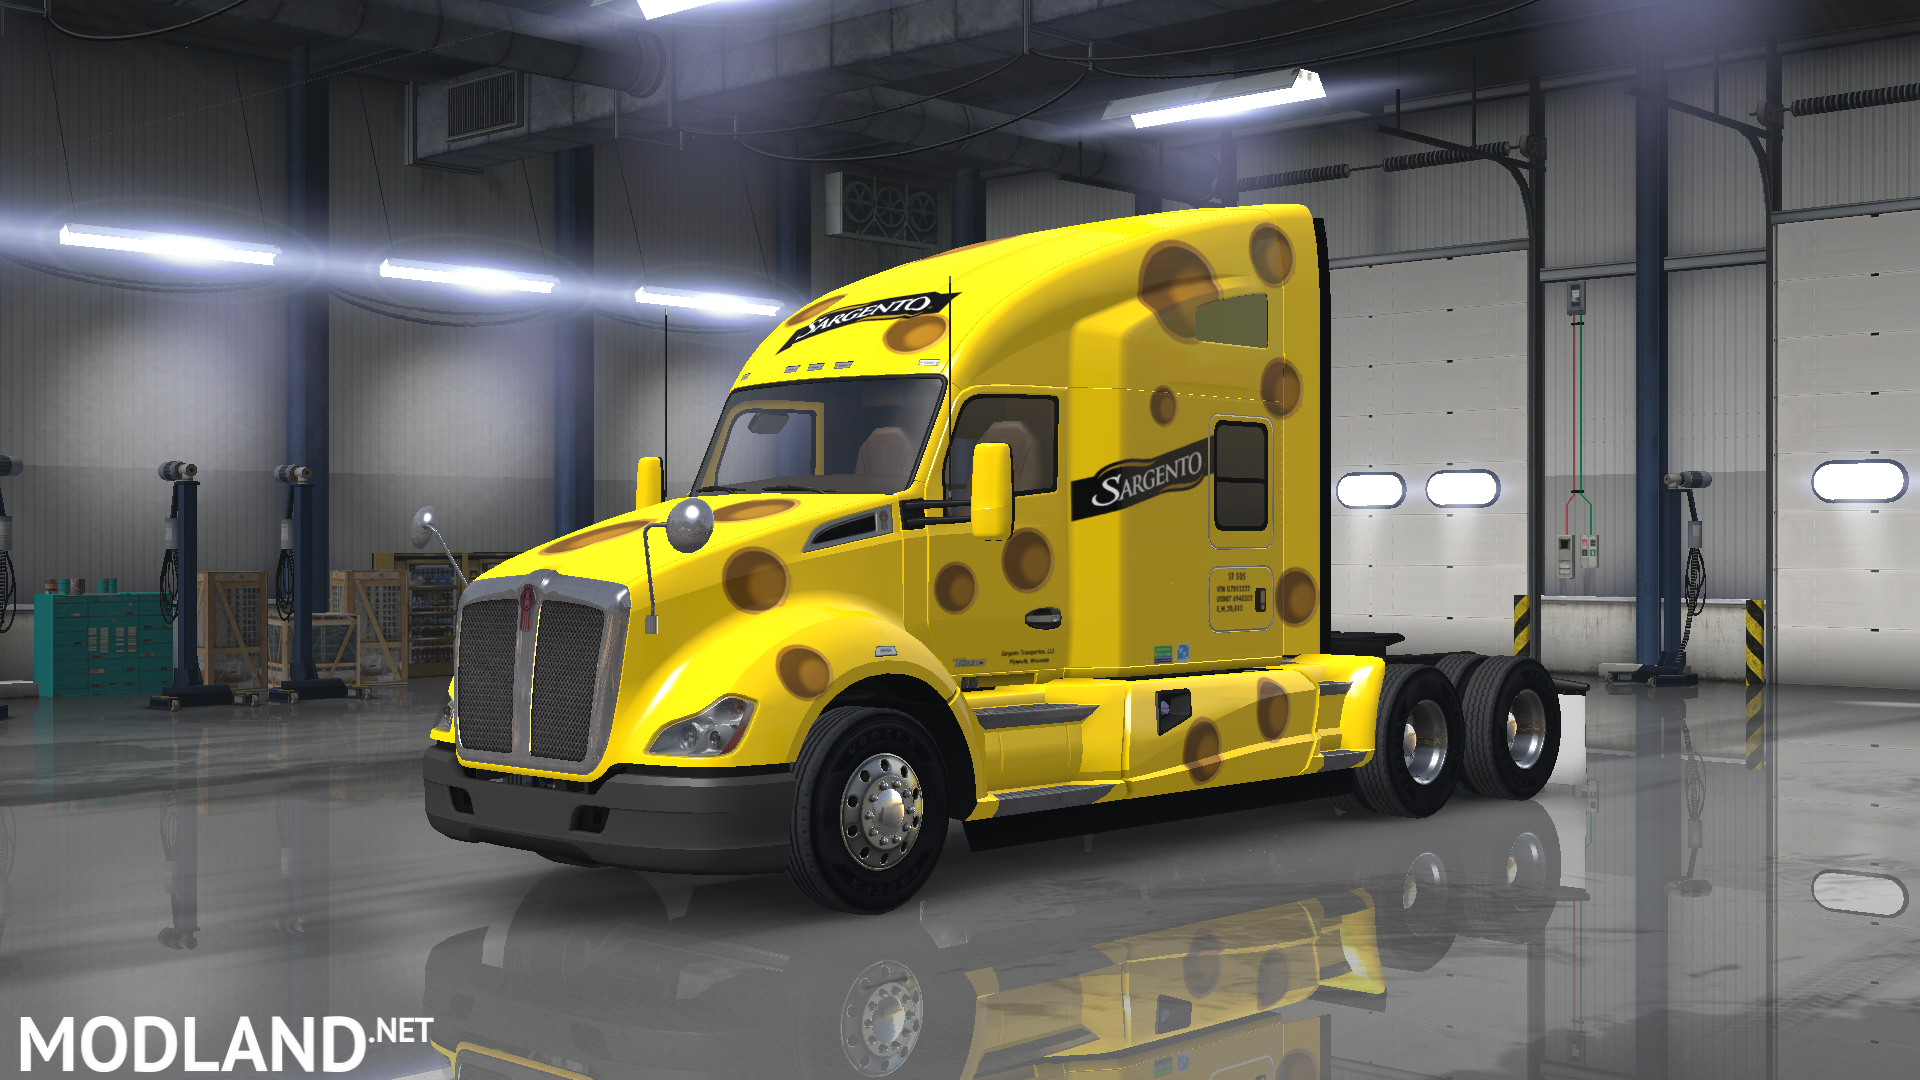 Kenworth t680 sargento cheese transportation skin mod for American Truck Simulator, ATS